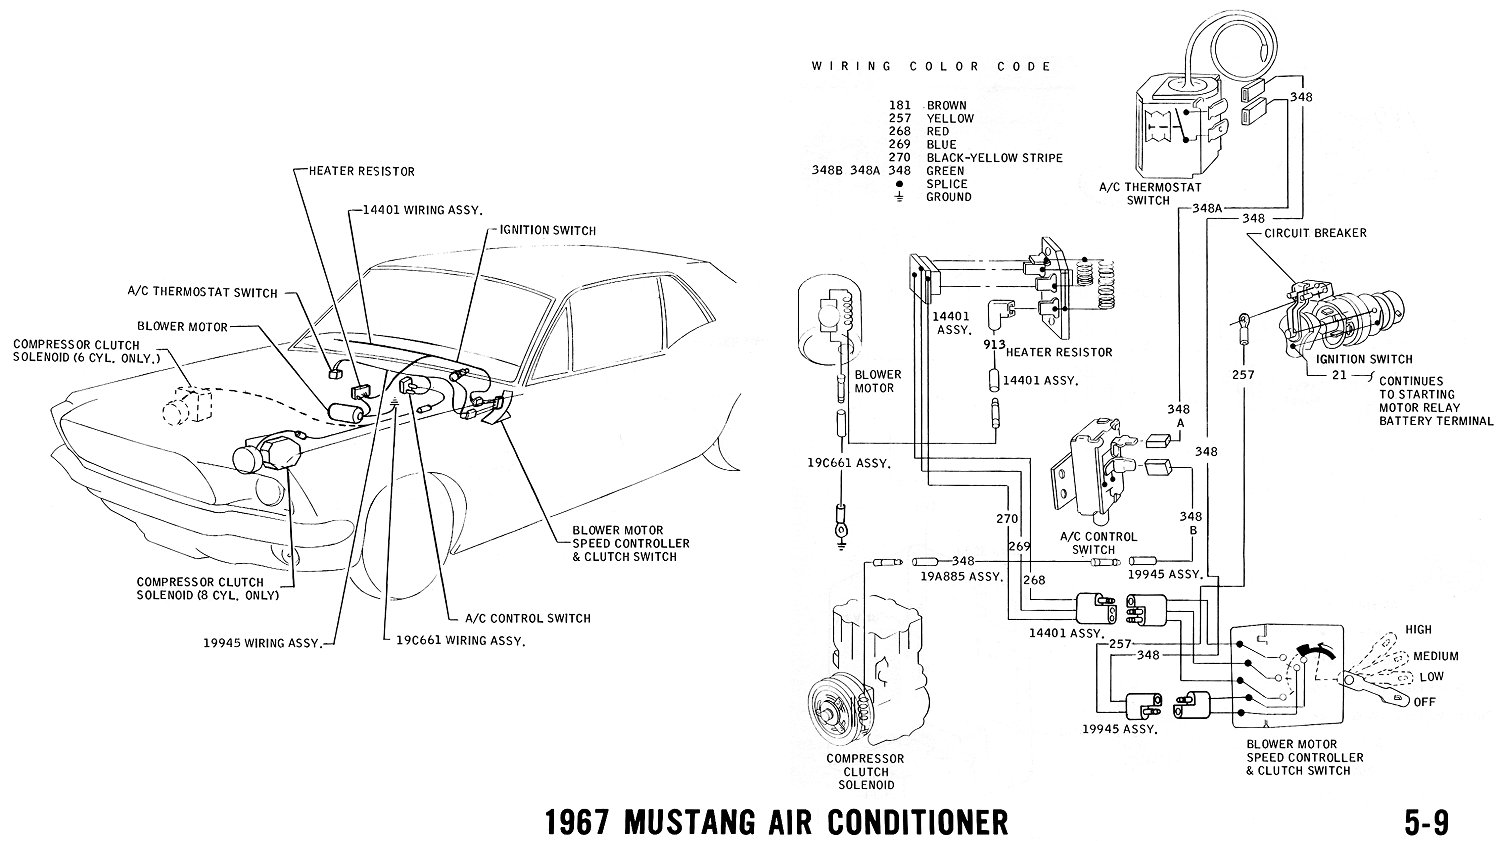 67ac 68 mustang wiring diagram 1969 mustang wiring diagram online 65 mustang dash wiring diagram at bayanpartner.co